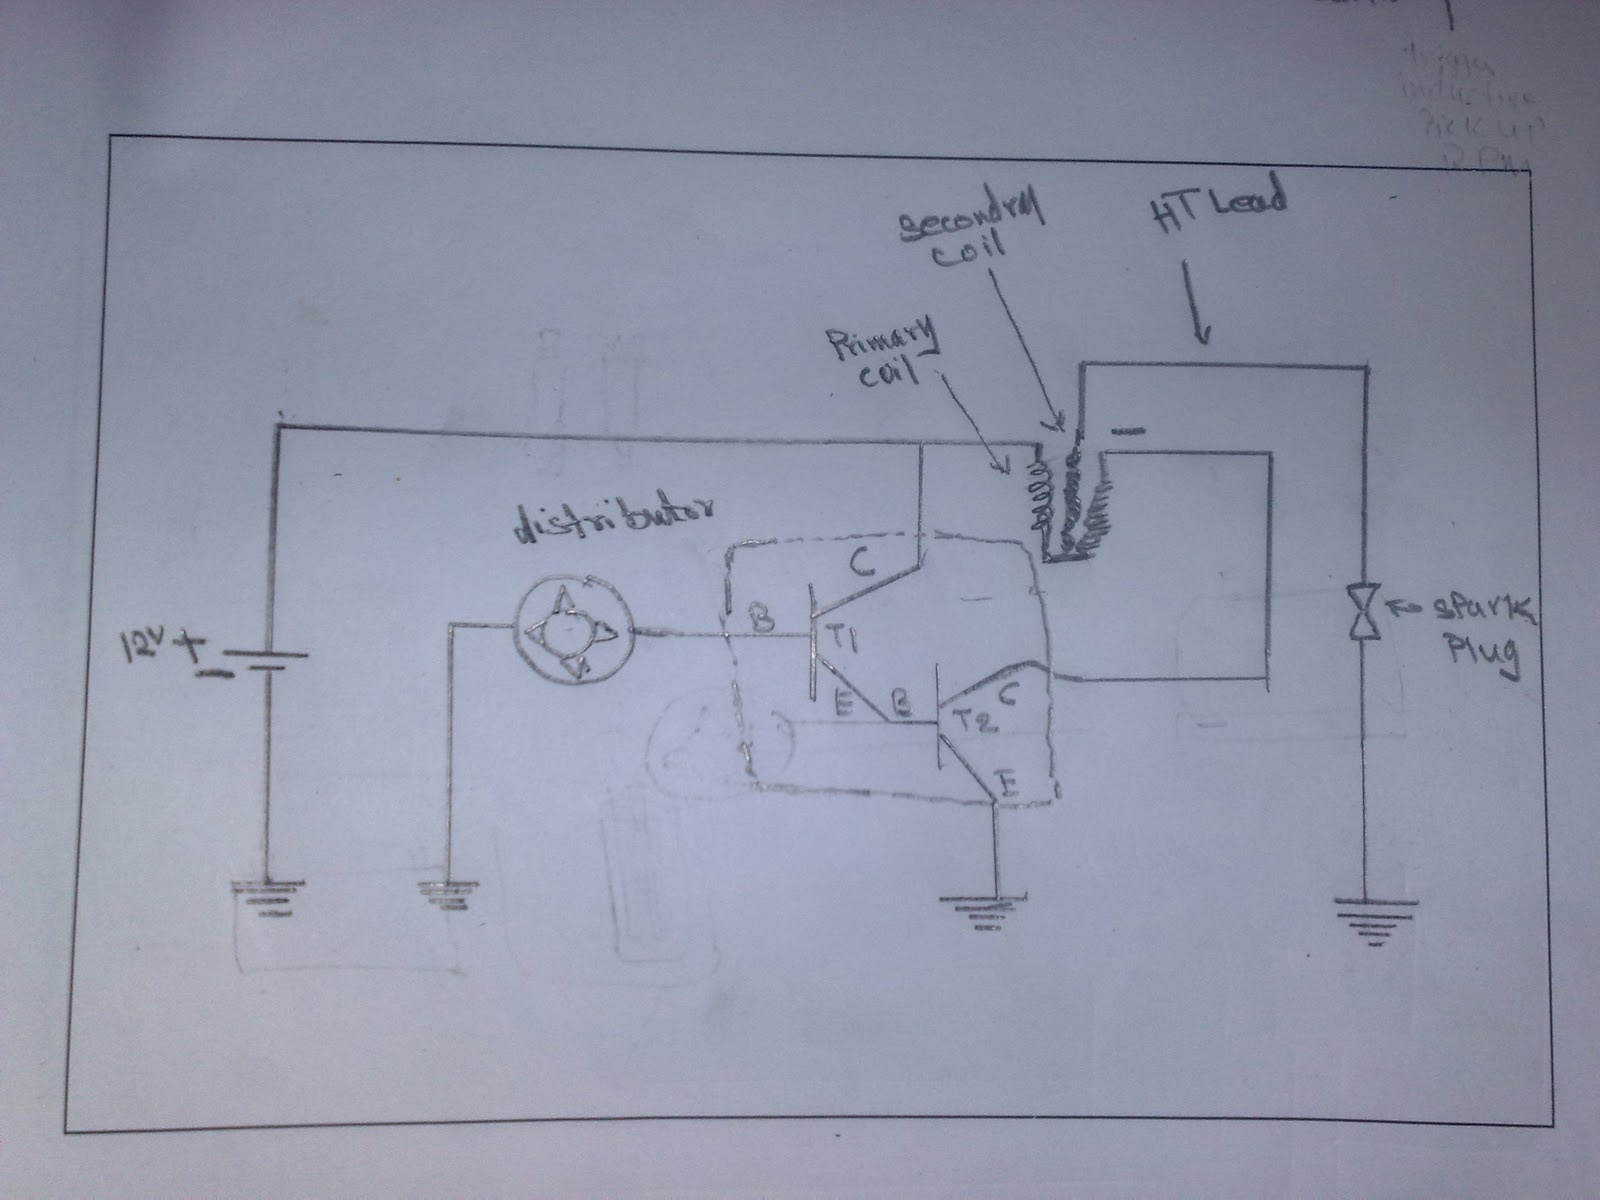 group engine diagram wiring library group engine diagram [ 1600 x 1200 Pixel ]